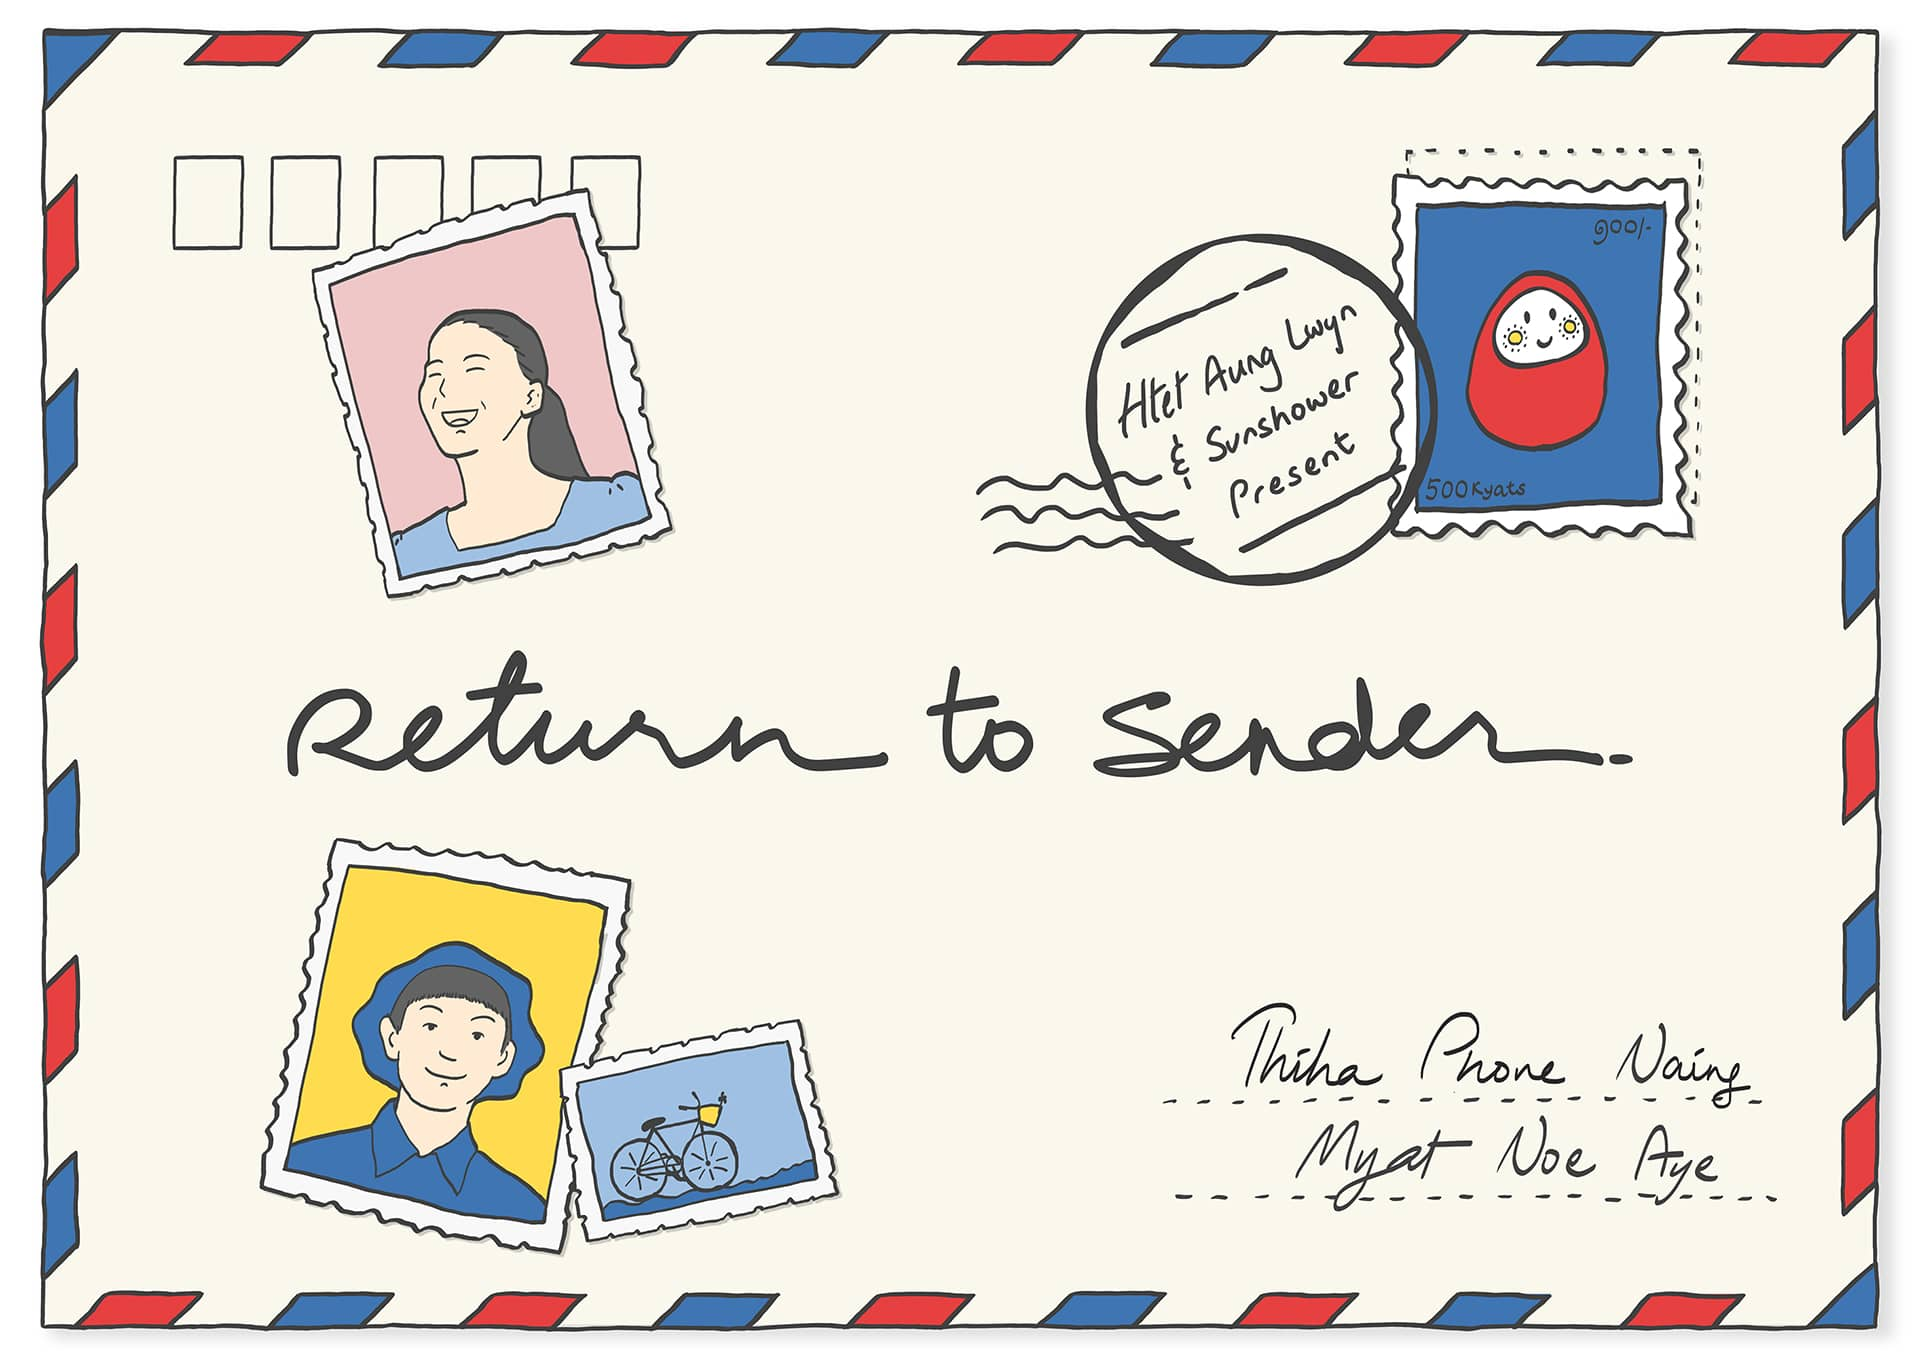 Return to Sender Poster, mailing envelope with stamps and the text 'Return to Sender' written on it